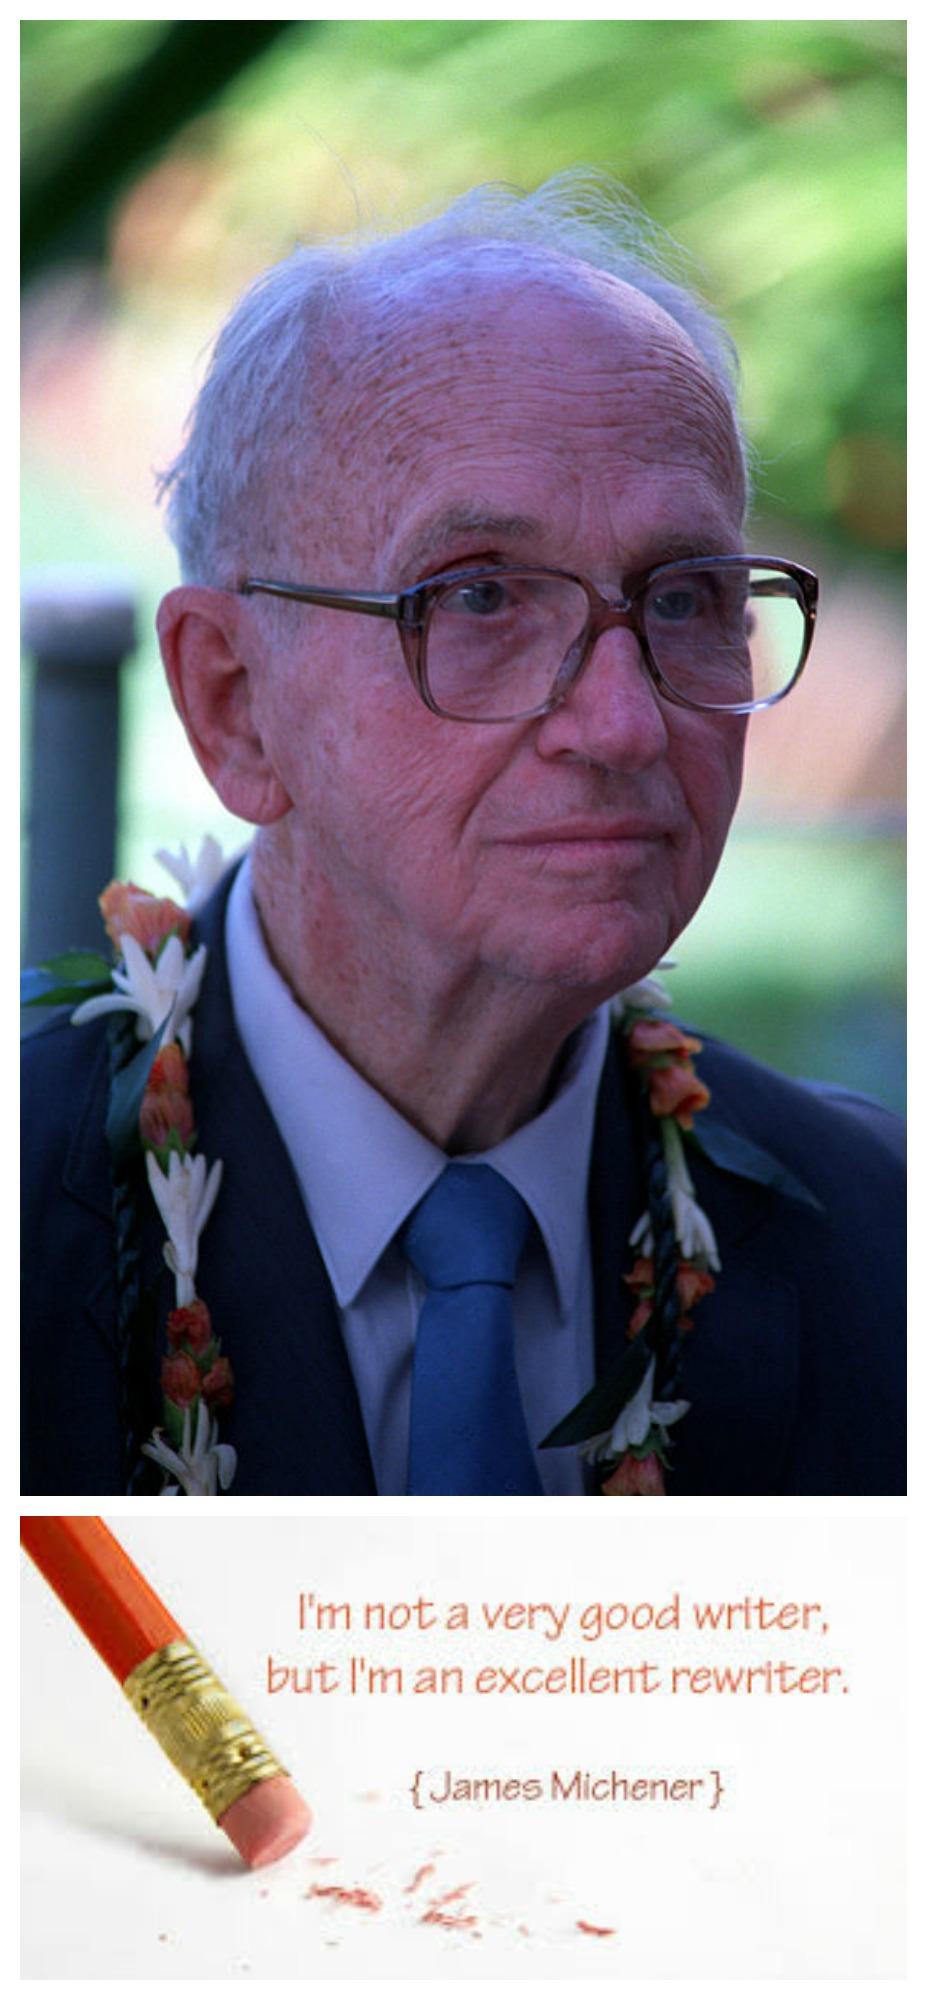 """James Michener, who gave the world classics such as """"Hawaii"""" and """"Centennial,"""" described himself as a poor writer, but a good rewriter. Aspire to be a good rewriter."""